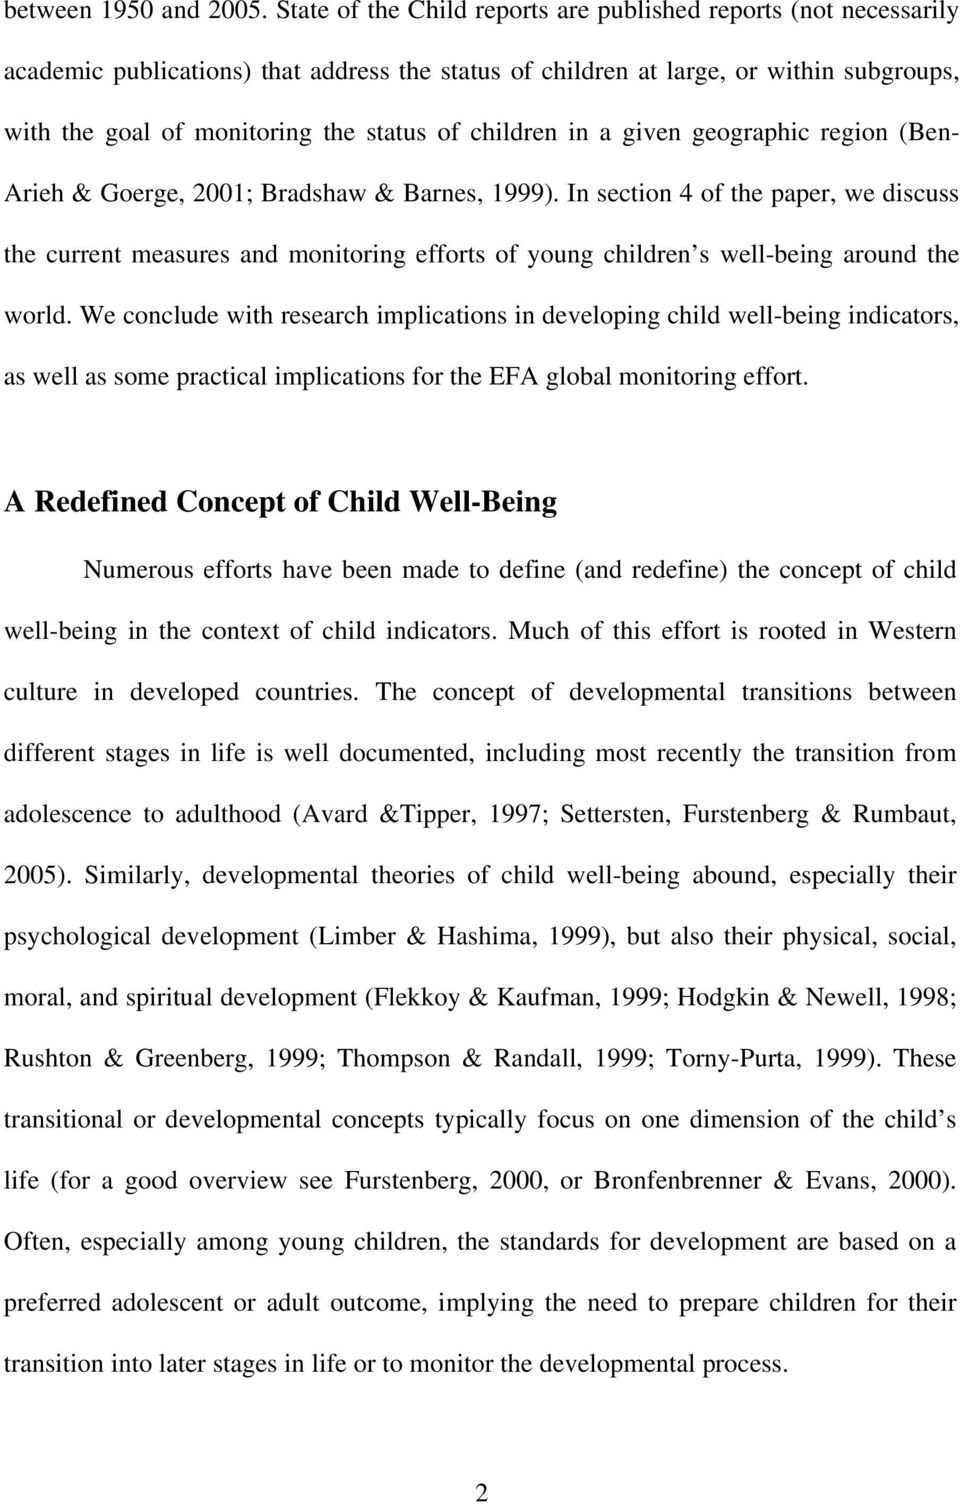 children in a given geographic region (Ben- Arieh & Goerge, 2001; Bradshaw & Barnes, 1999).